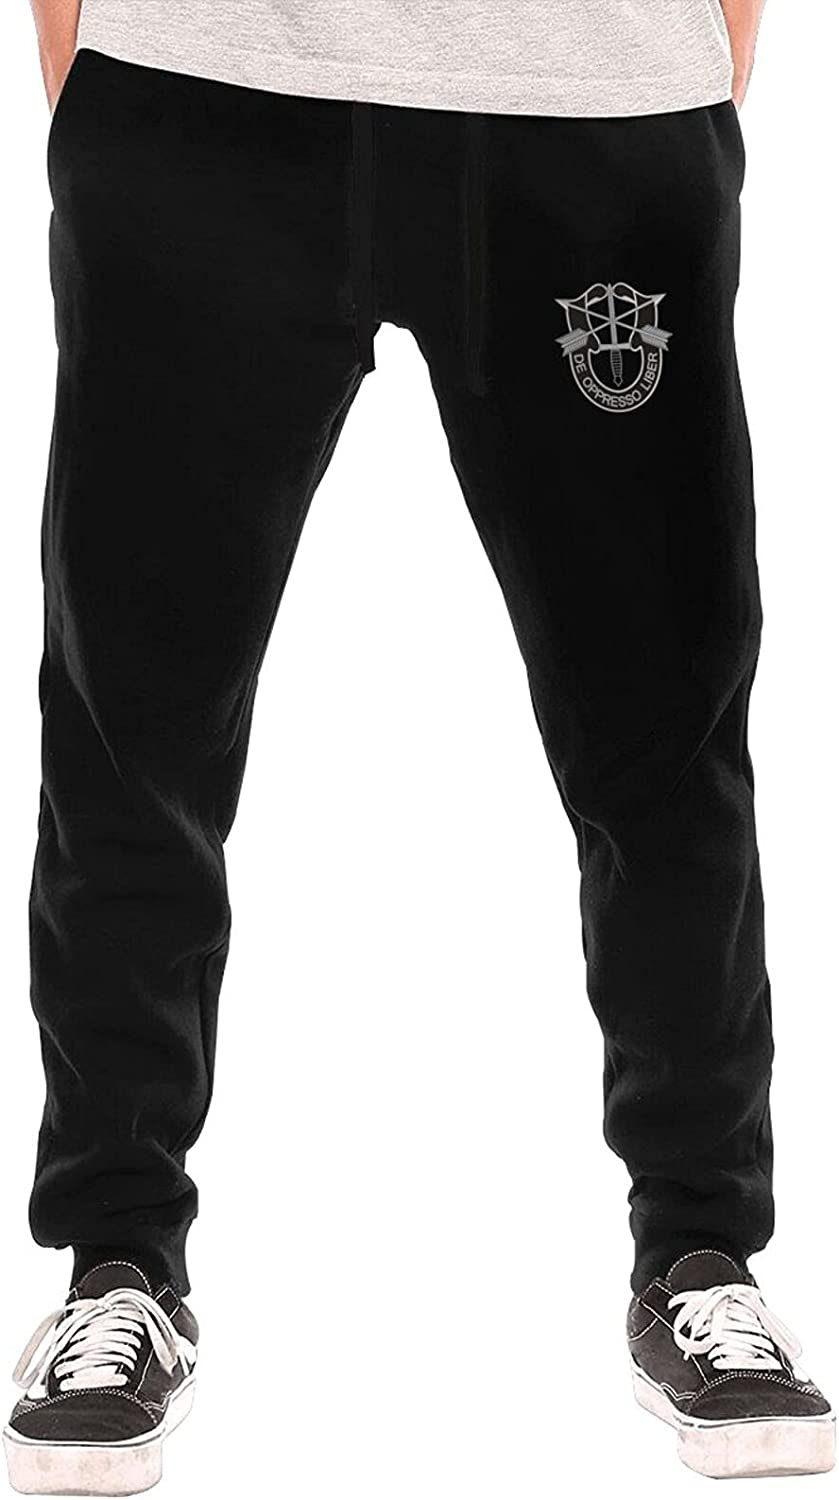 Bpauuiq Fashion Men's Sweatpants We OFFer at cheap prices with Bottom Open Fleece Pockets Max 77% OFF